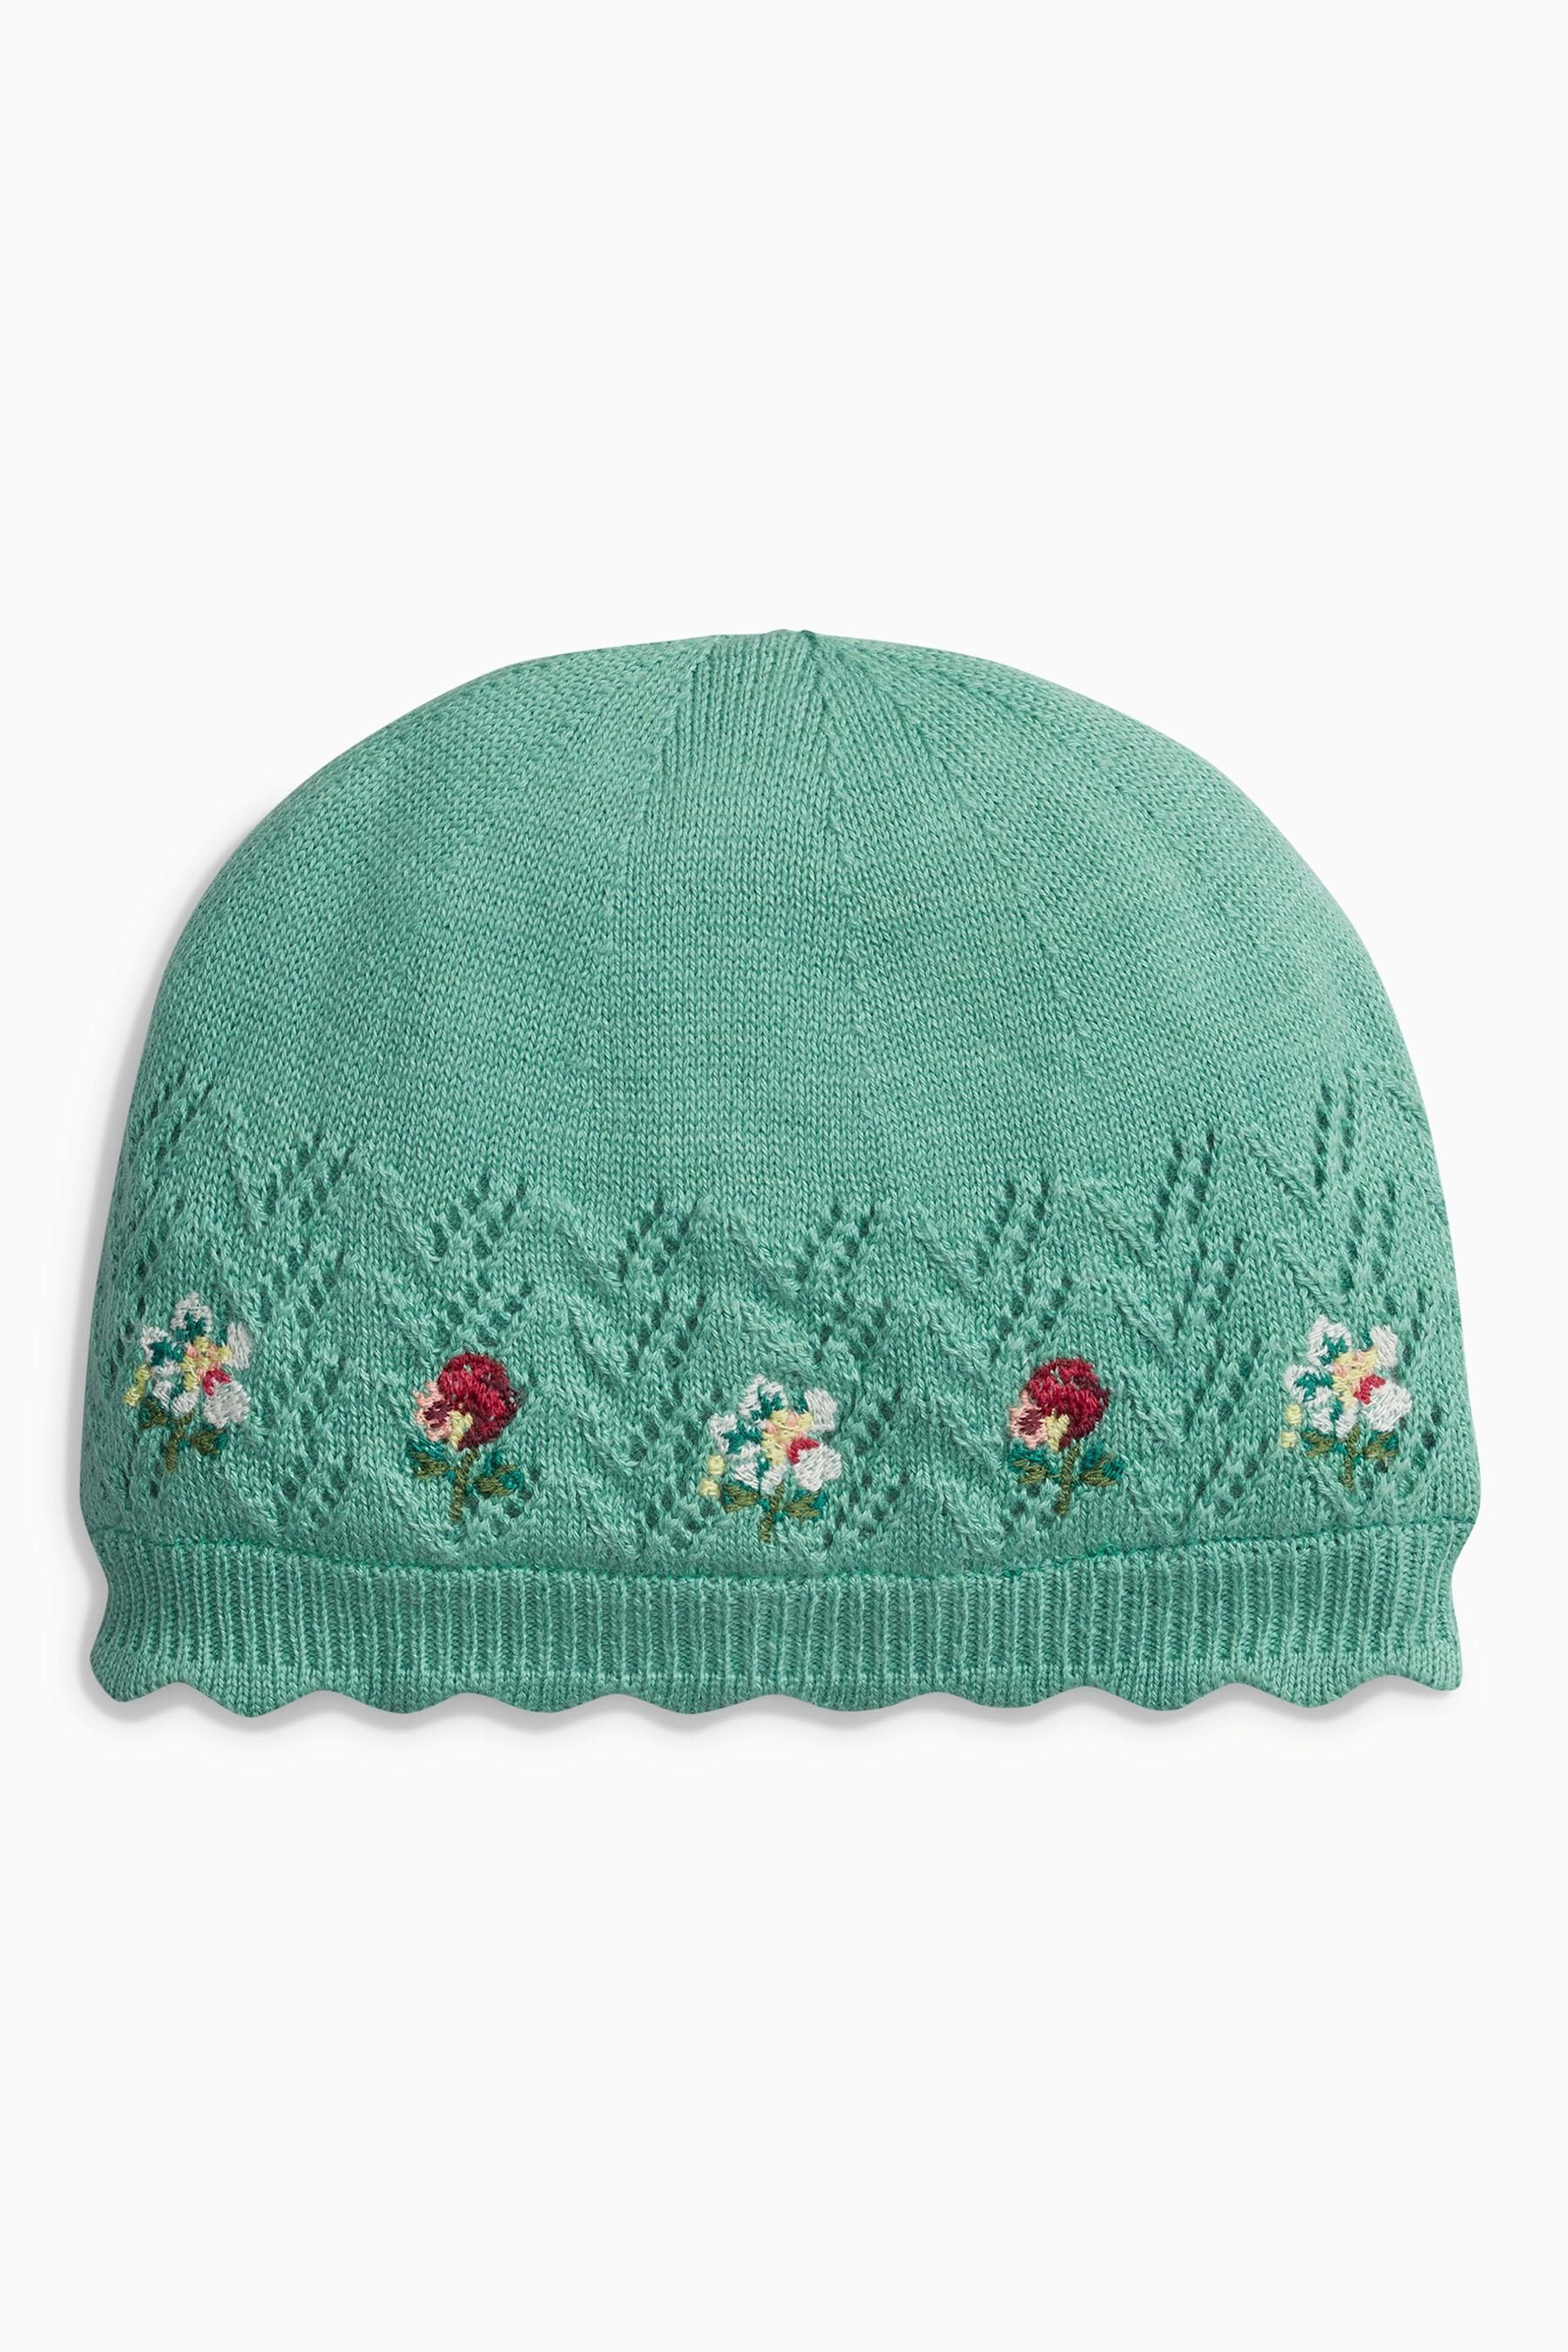 Buy Green Embroidered Knit Hat (0mths2yrs) From The Next Uk Online Shop